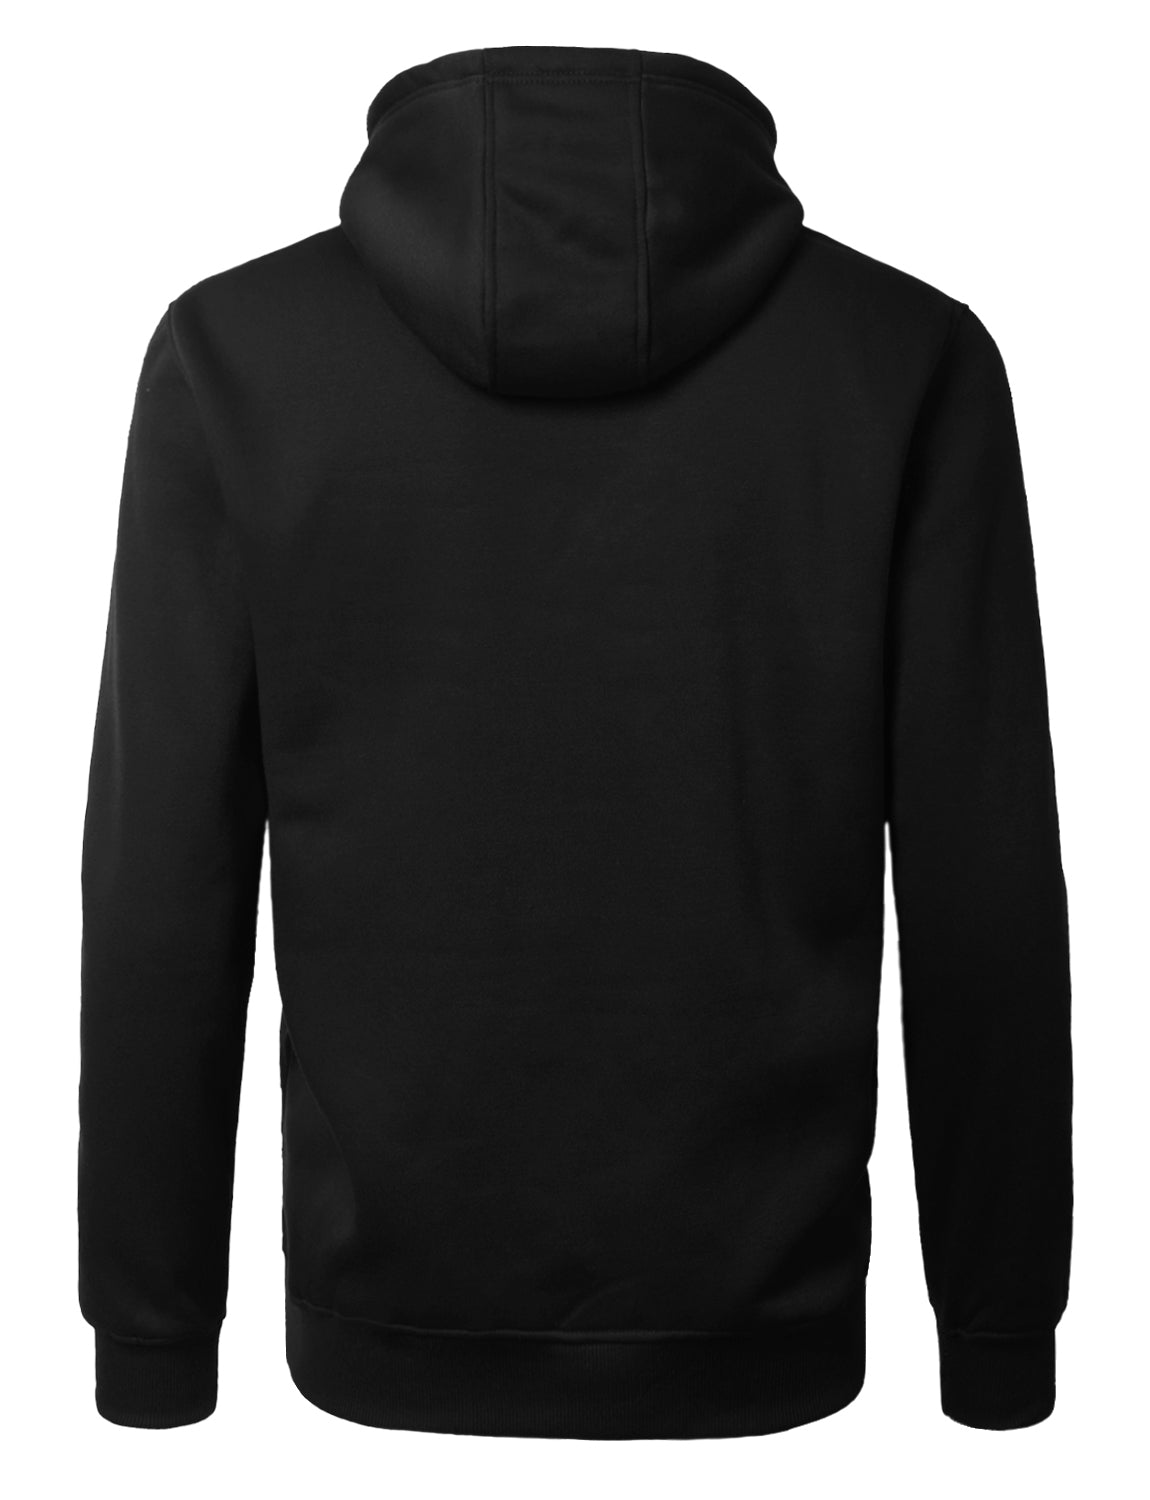 BLACK Basic Pullover Fleece Hoodie - URBANCREWS